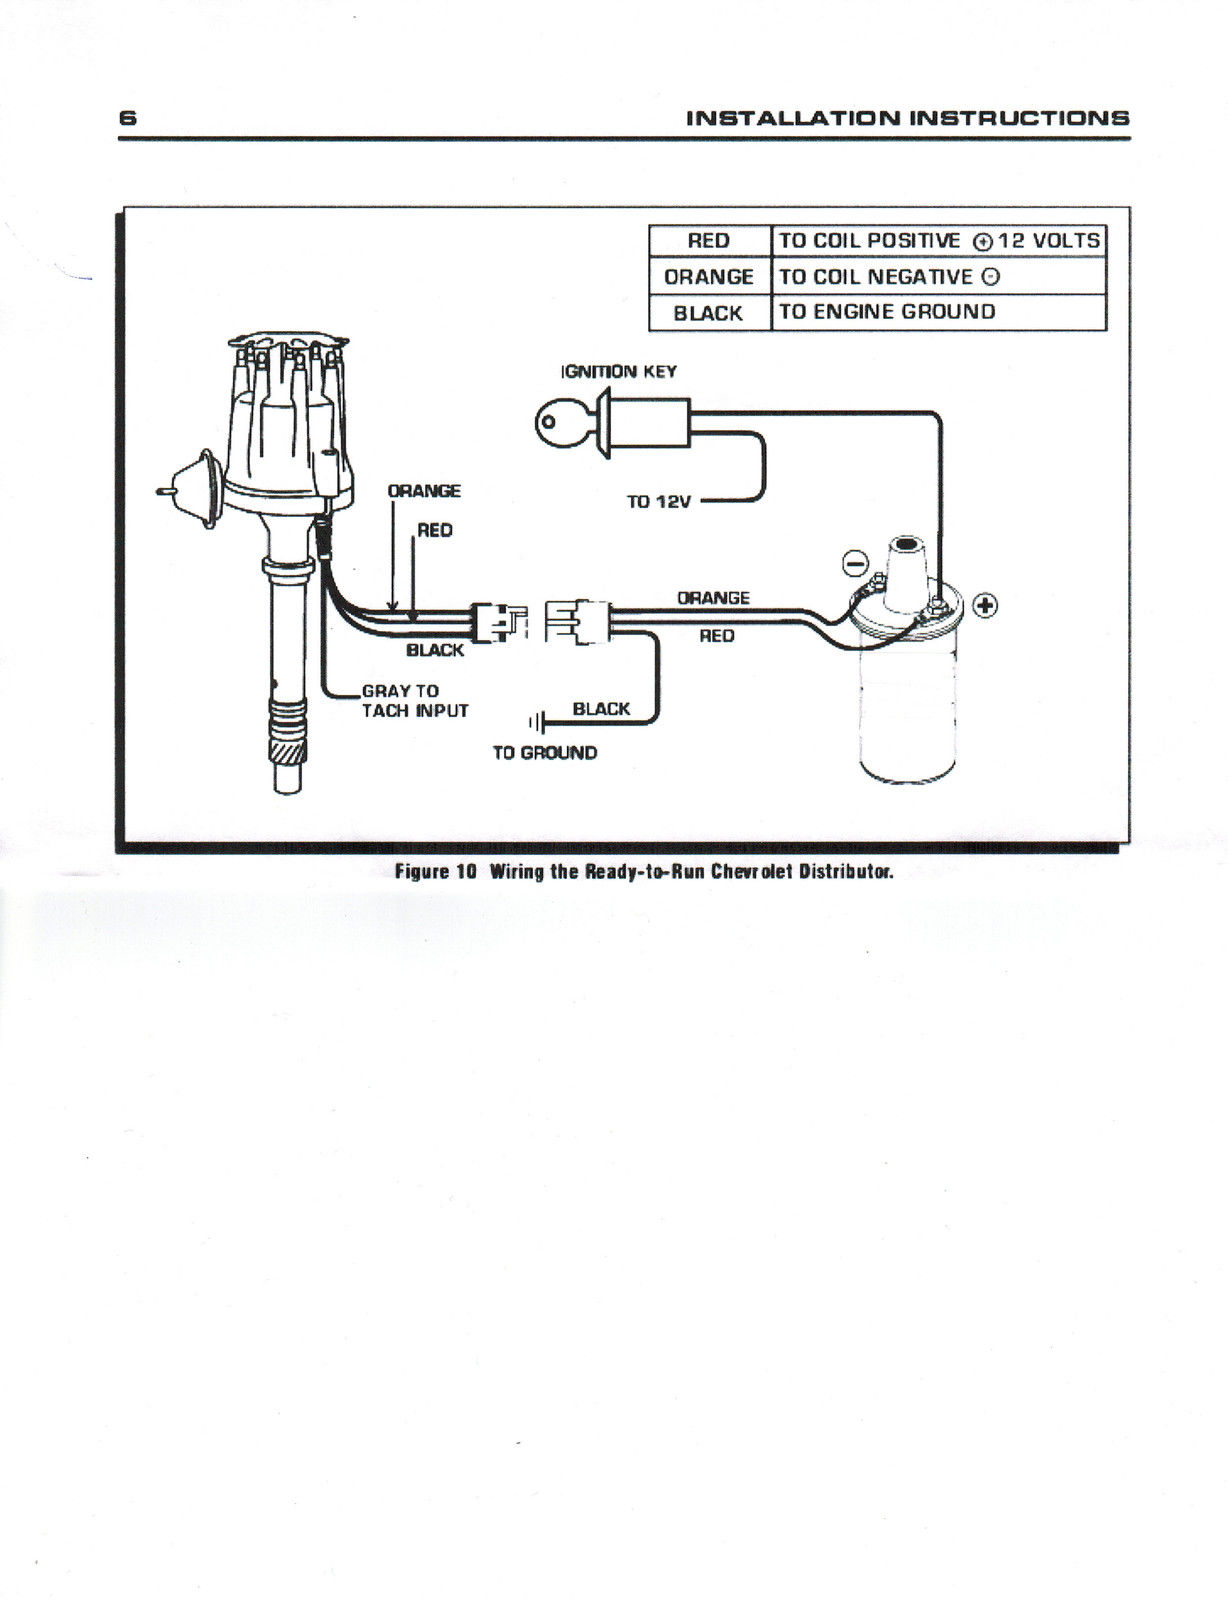 Gm Points Coil Wiring Diagram - Welding Lobe Diagram for Wiring Diagram  SchematicsWiring Diagram Schematics